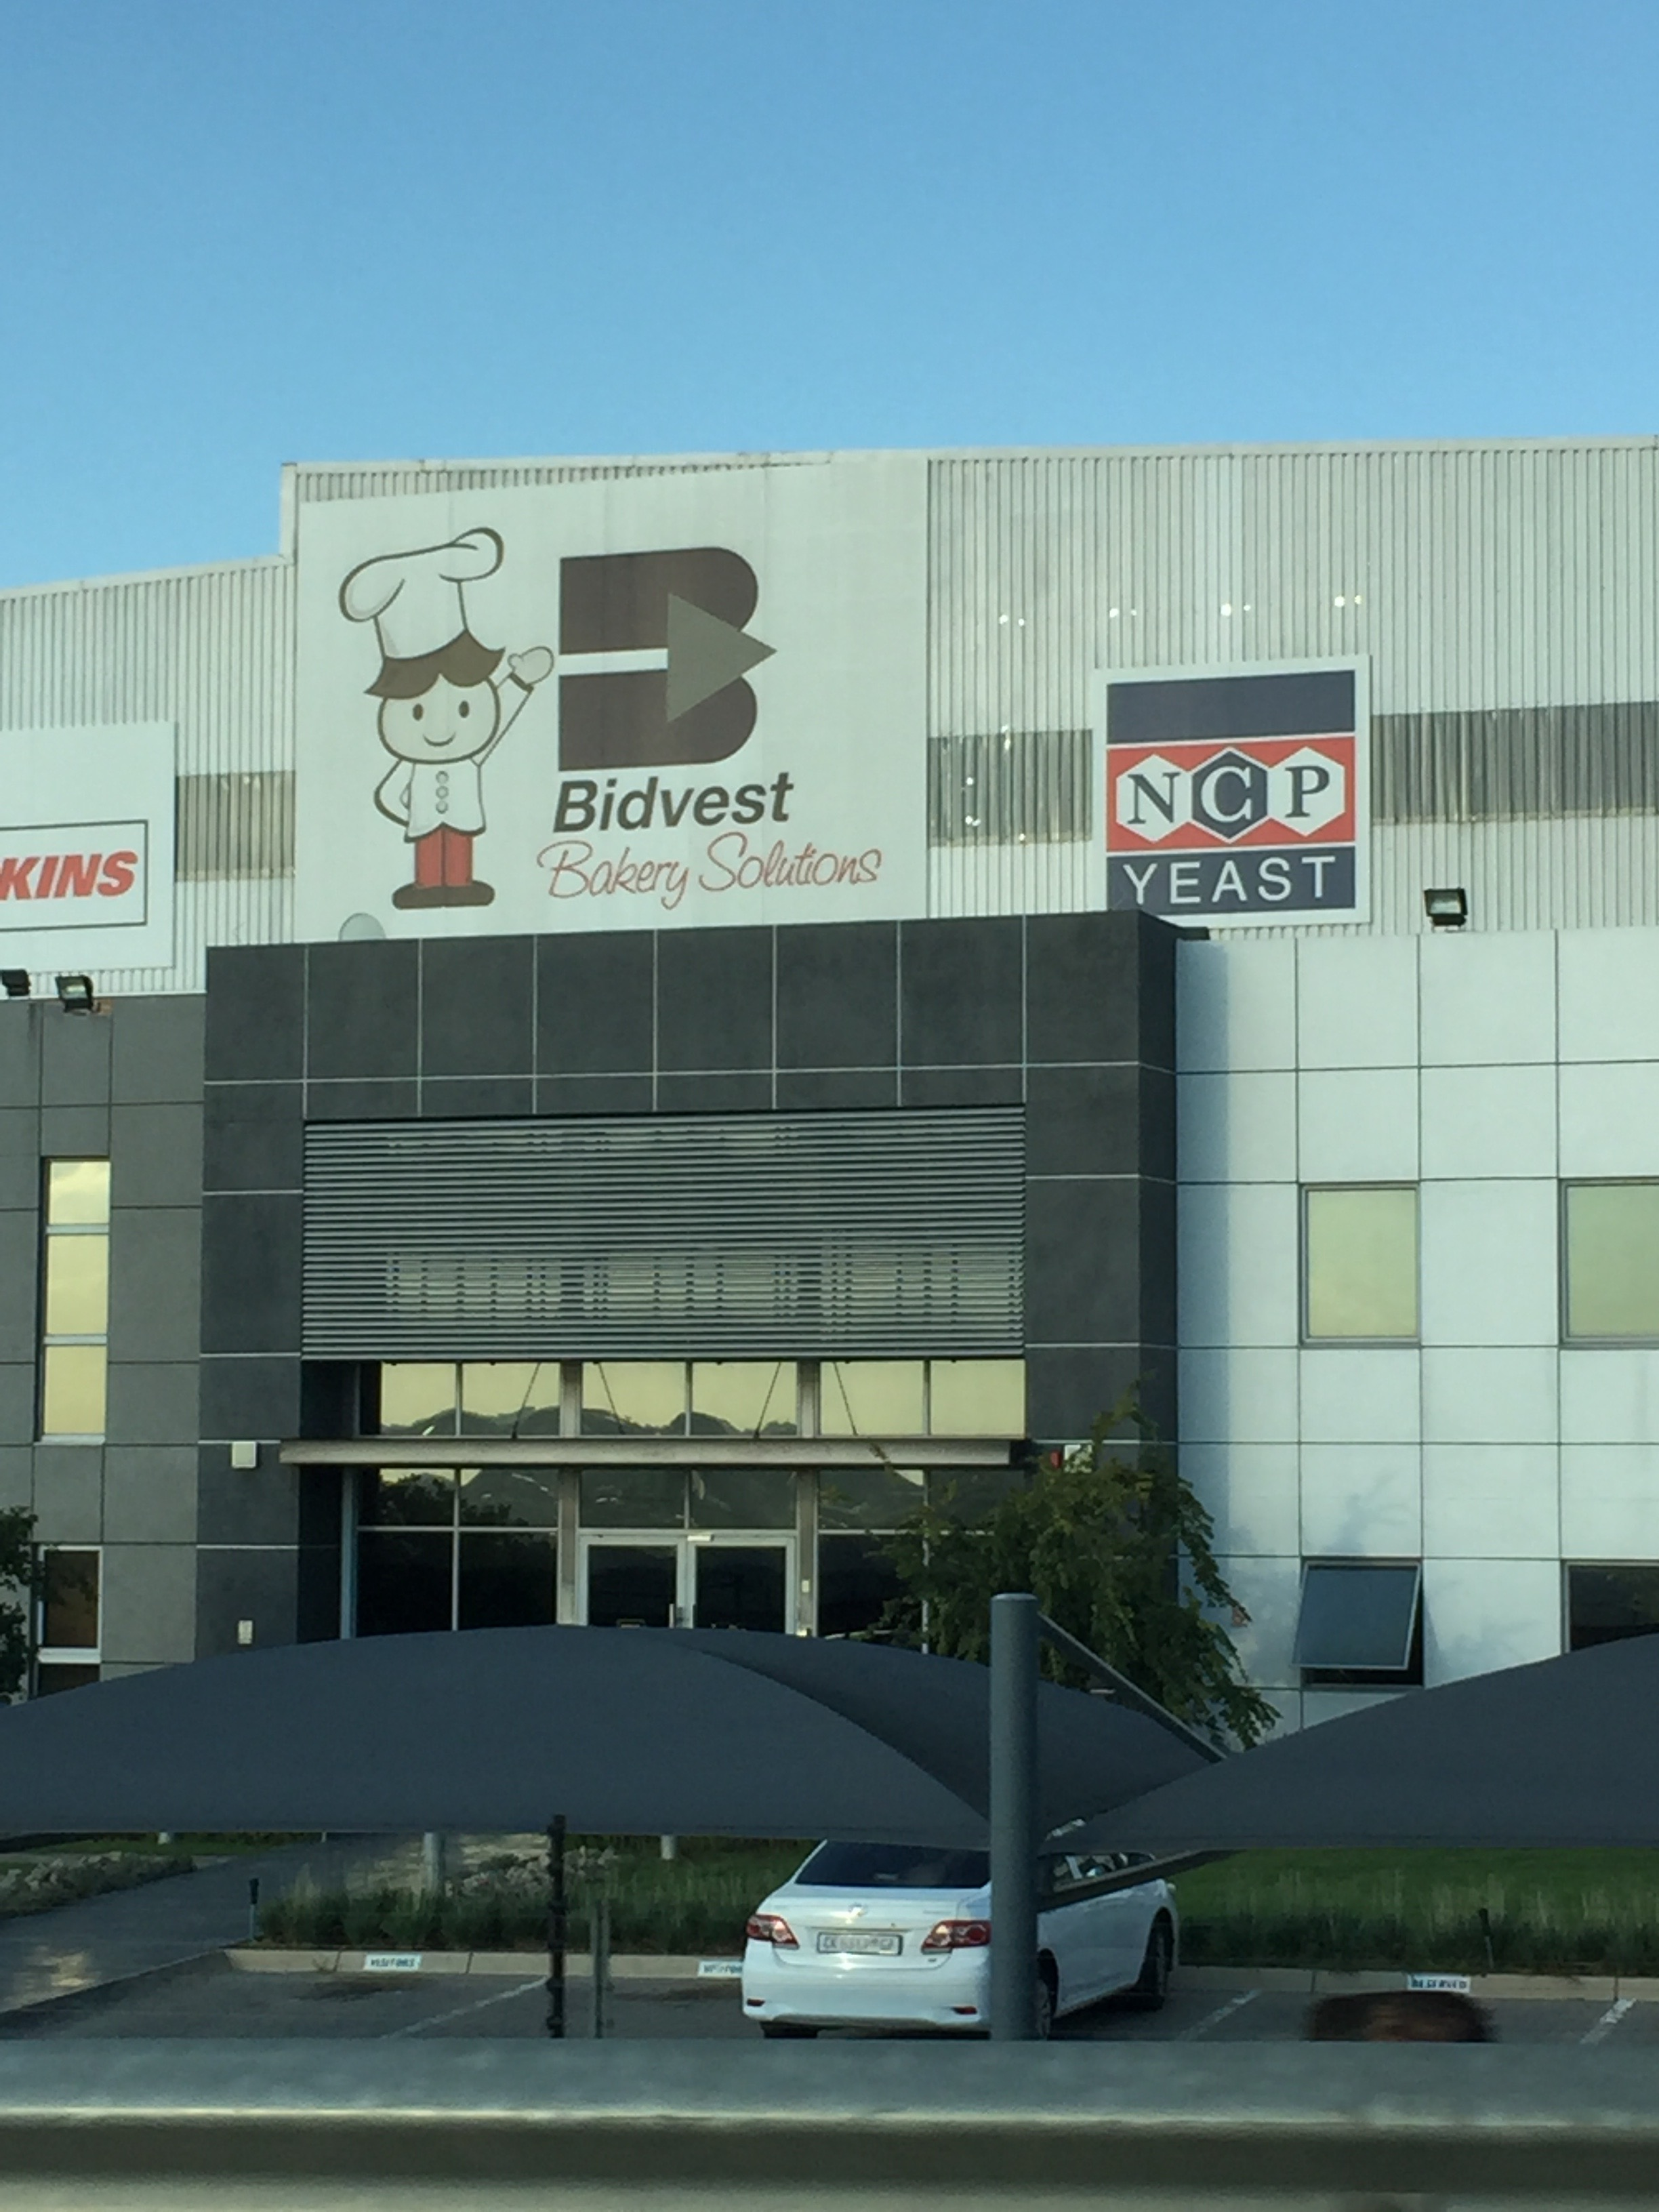 More in Gauteng than Cape Town, we found Bidvest was EVERYWHERE! They did car rentals, banking, staffing, apparently baking (see photo), and even toilet paper supplies. Brian and I decided if Bidvest ever went under, the whole country would stop working properly.